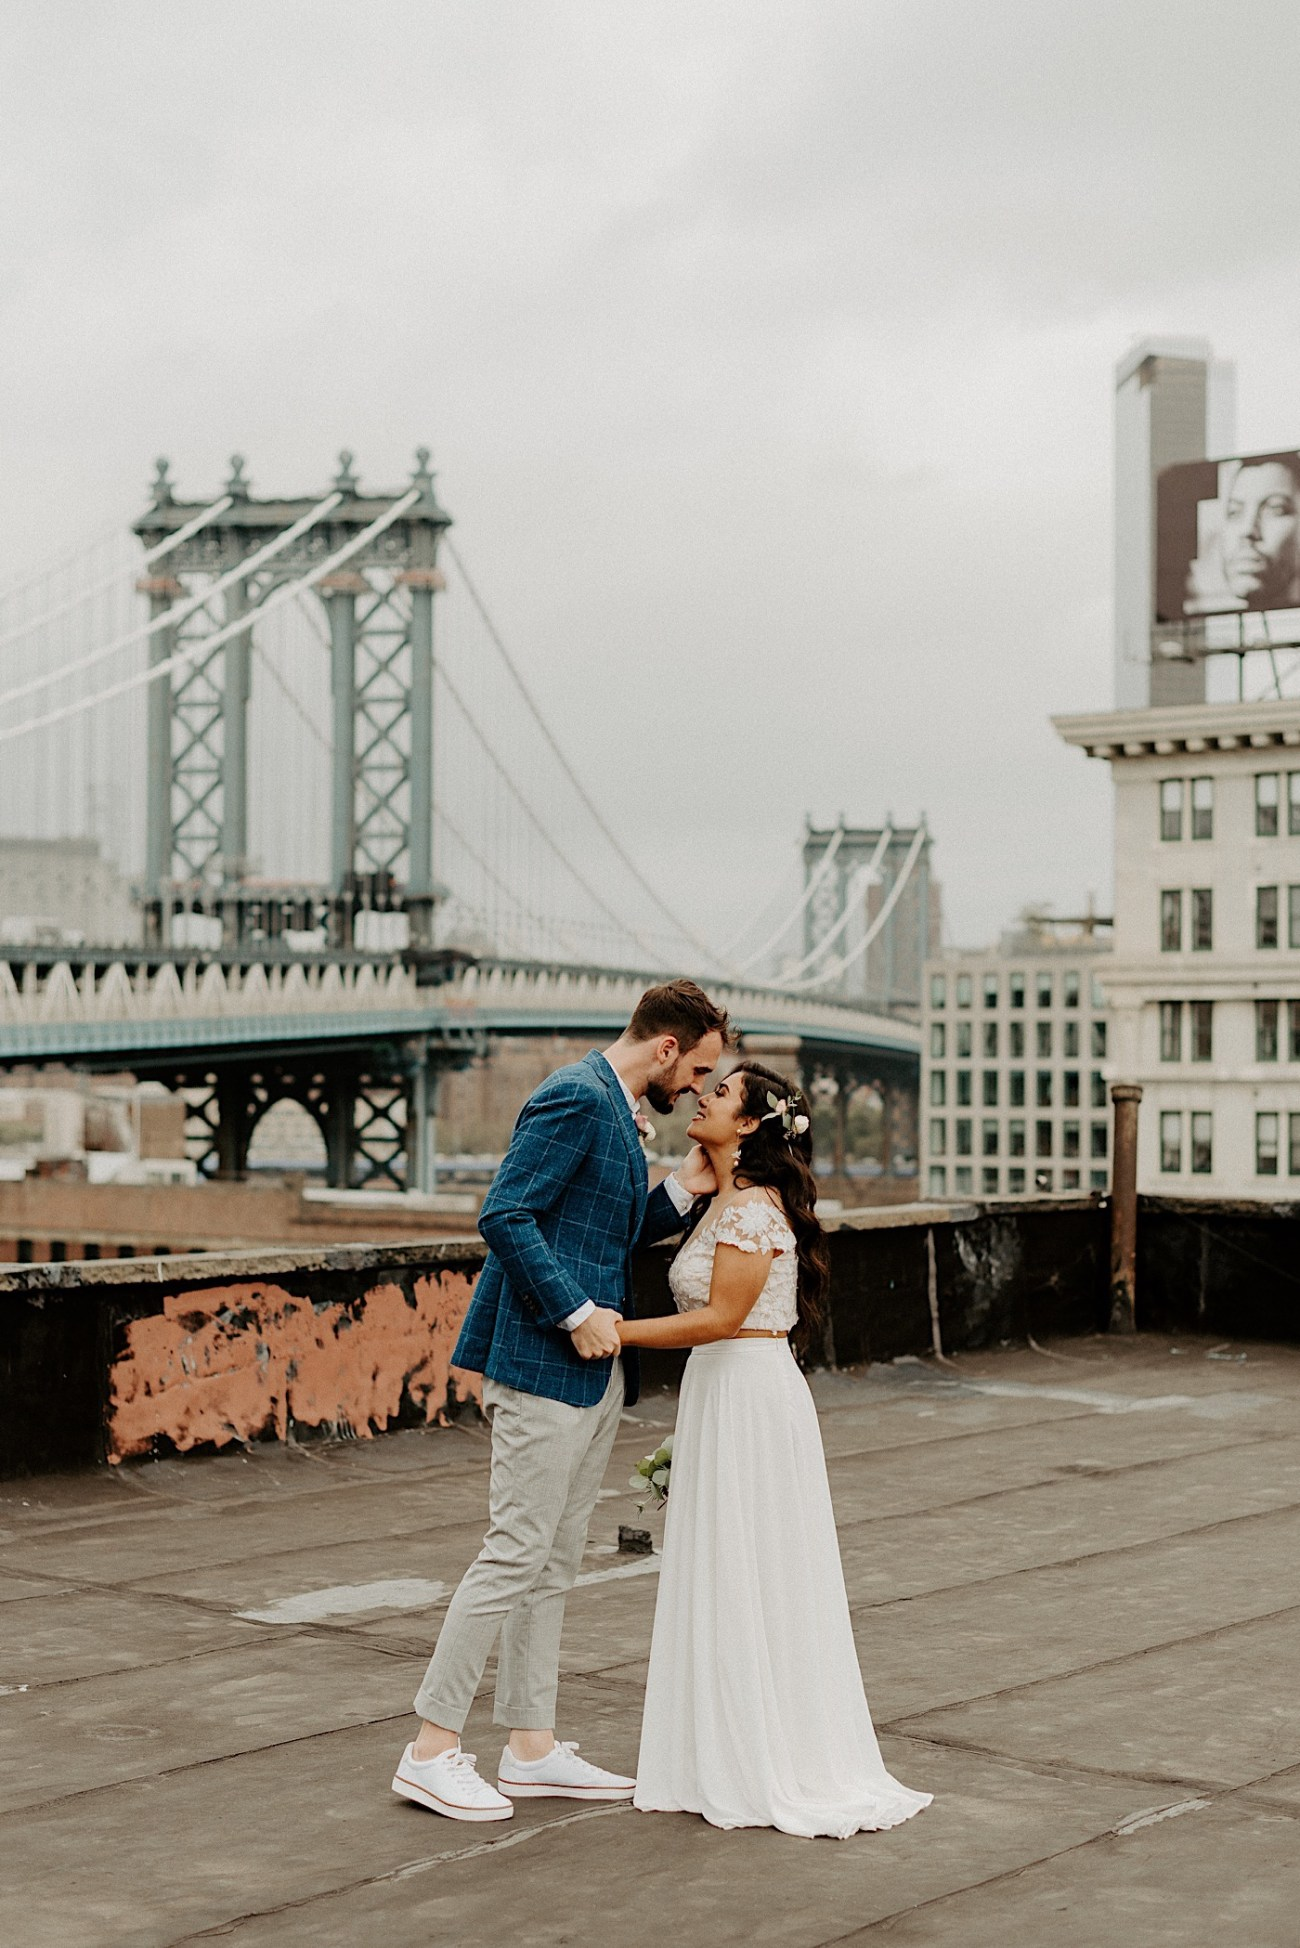 LIC Wedding Greenpoint Wedding LIC Elopement New York Wedding Photographer 076